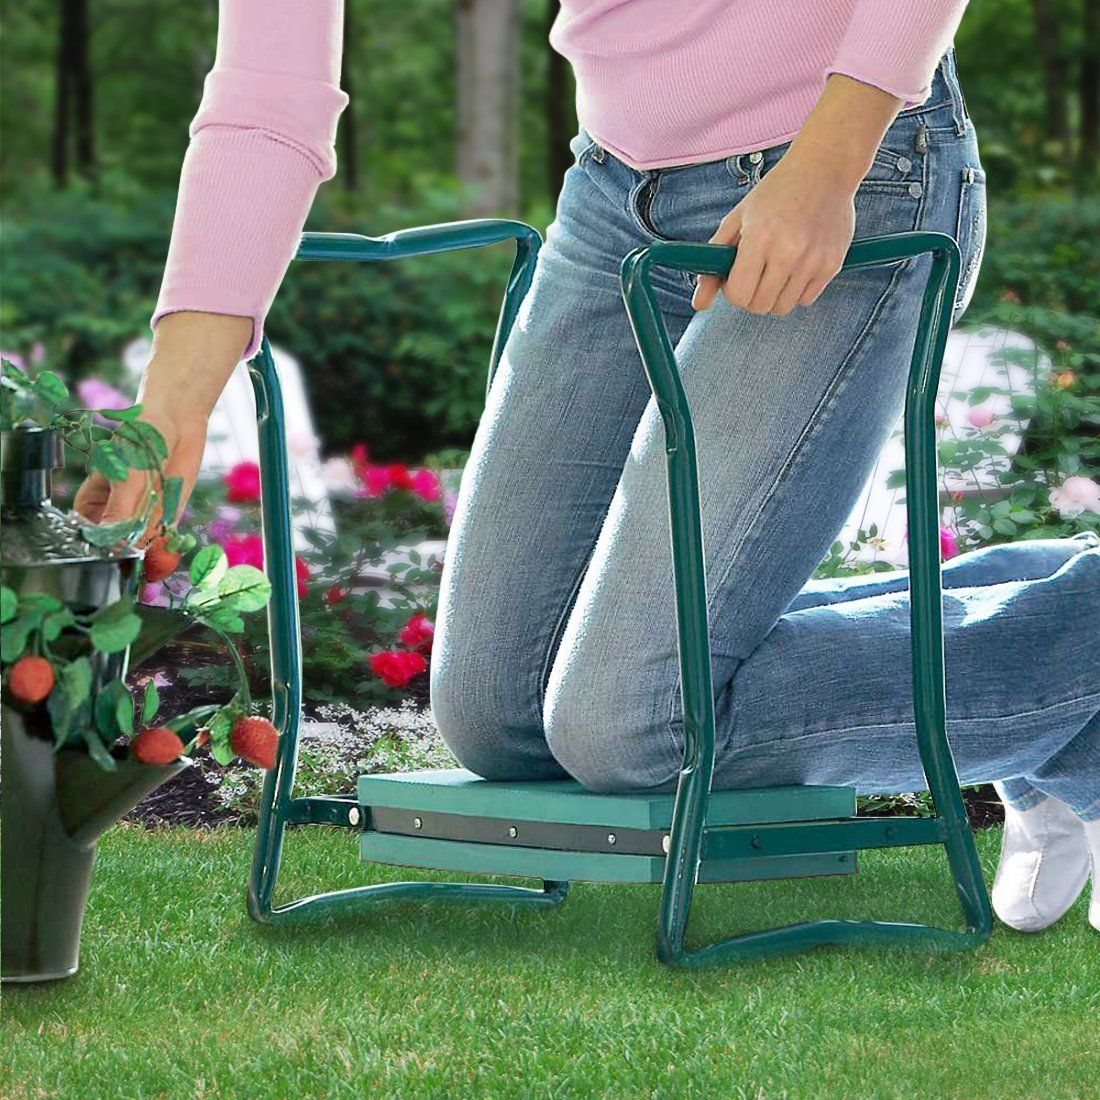 Sturdy and Lightweight Clothes From Dirt /& Grass Stains Garden Kneeler And Seat Protects Your Knees Foldable Stool For Ease Of Storage EVA Foam Pad Bench Comes With A Free Tool Pouch!